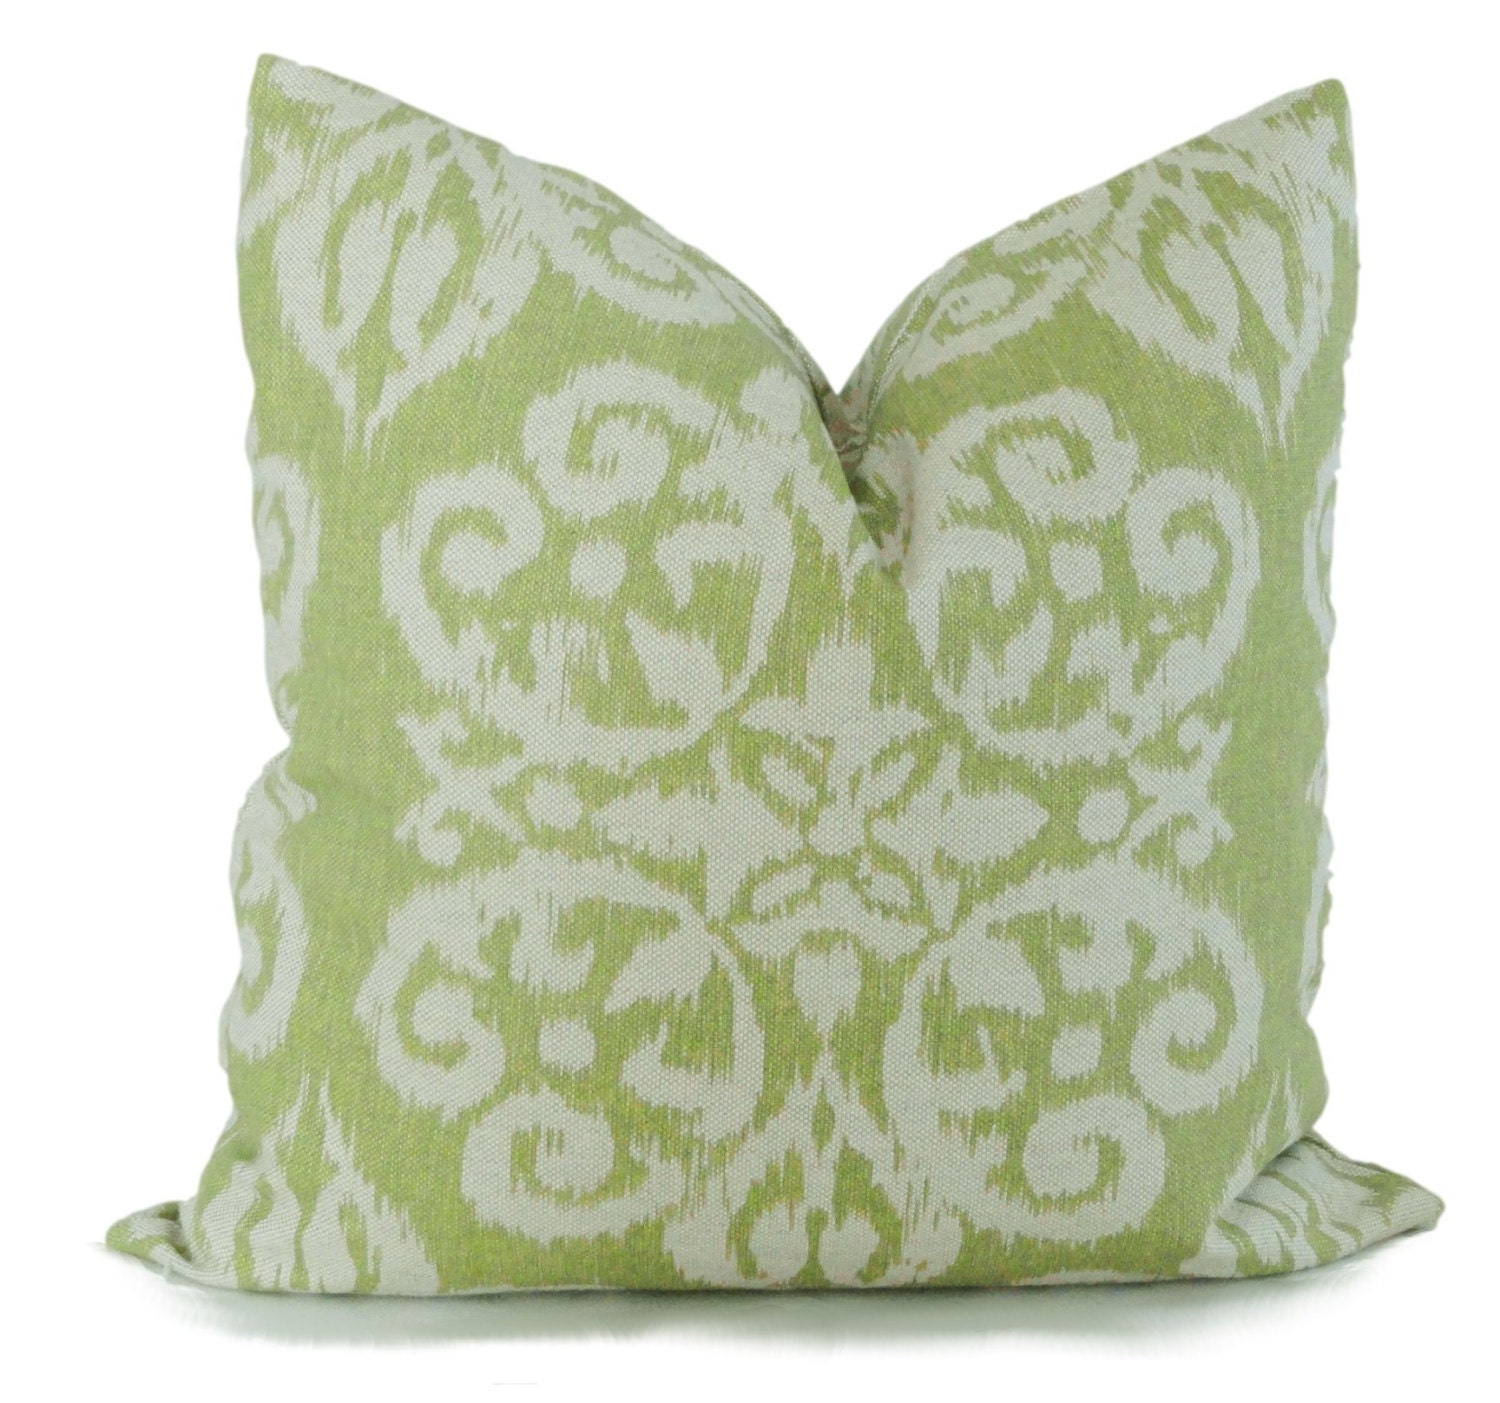 Celery Green Throw Pillow : Lacefield Celery Green Ikat Decorative Pillow Cover by PopOColor